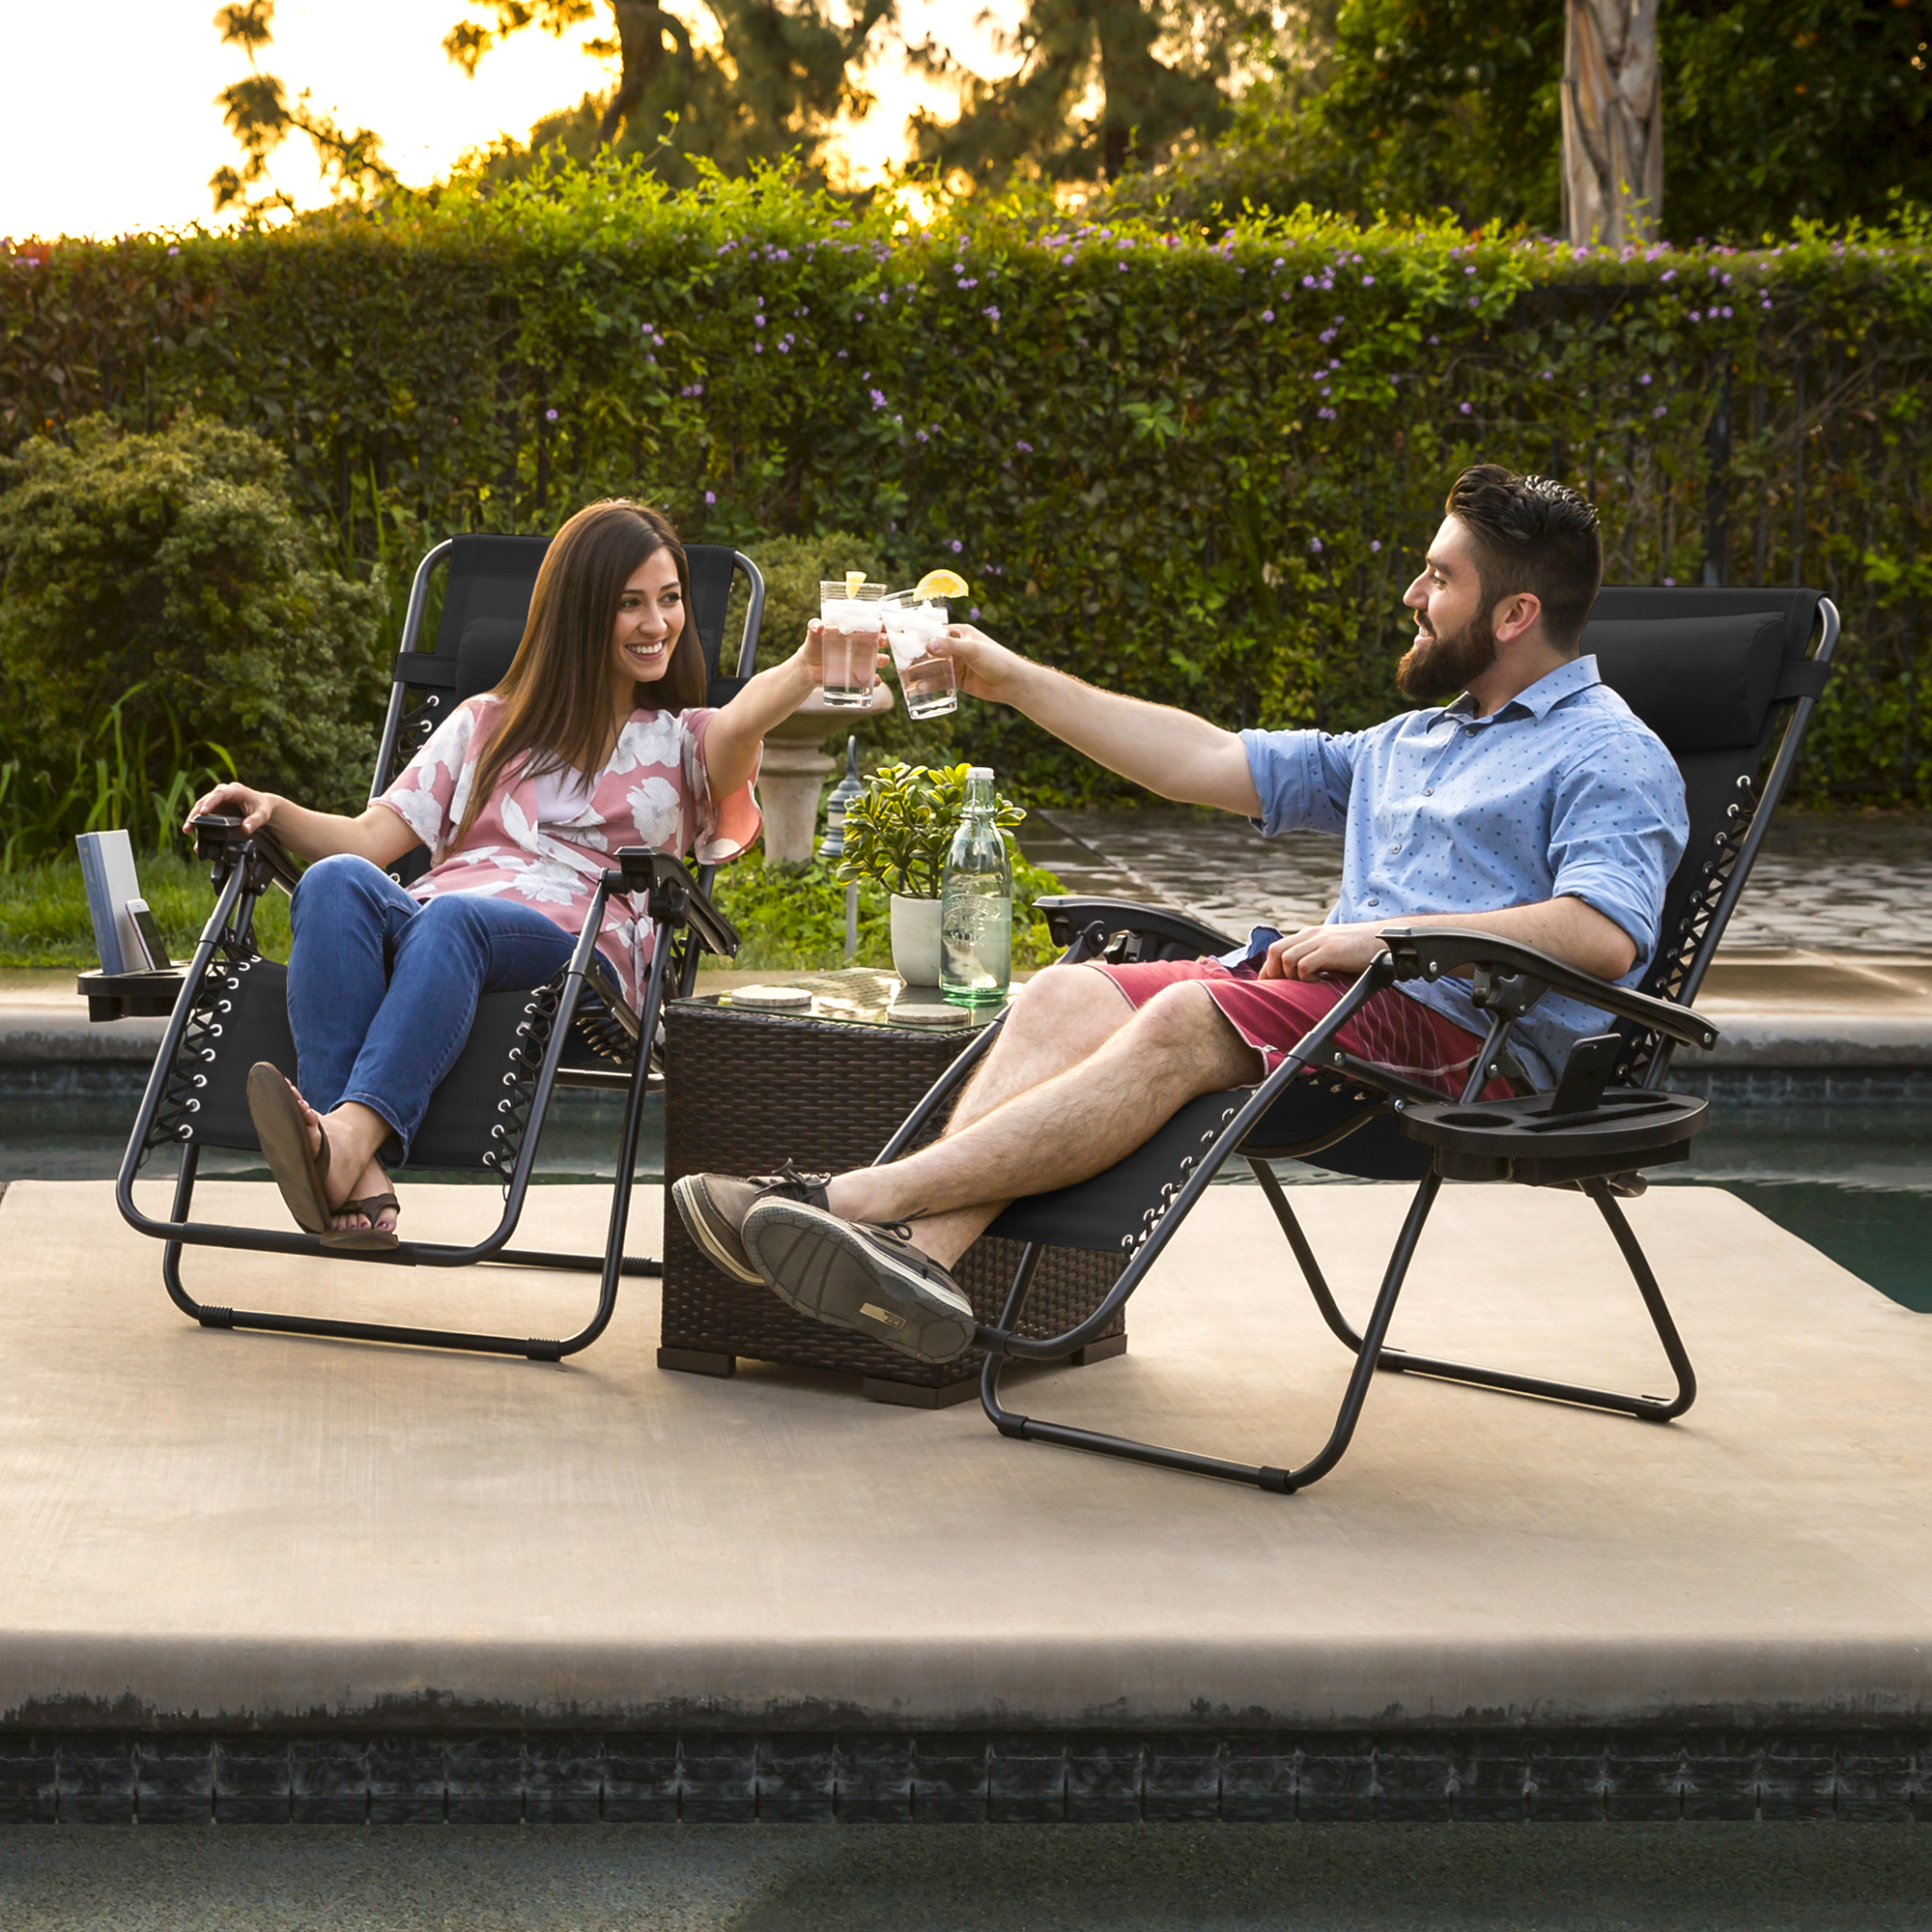 primus reclining outdoor lounge chair hunting chairs and stools zero gravity case of 2 patio yard beach new walmart com